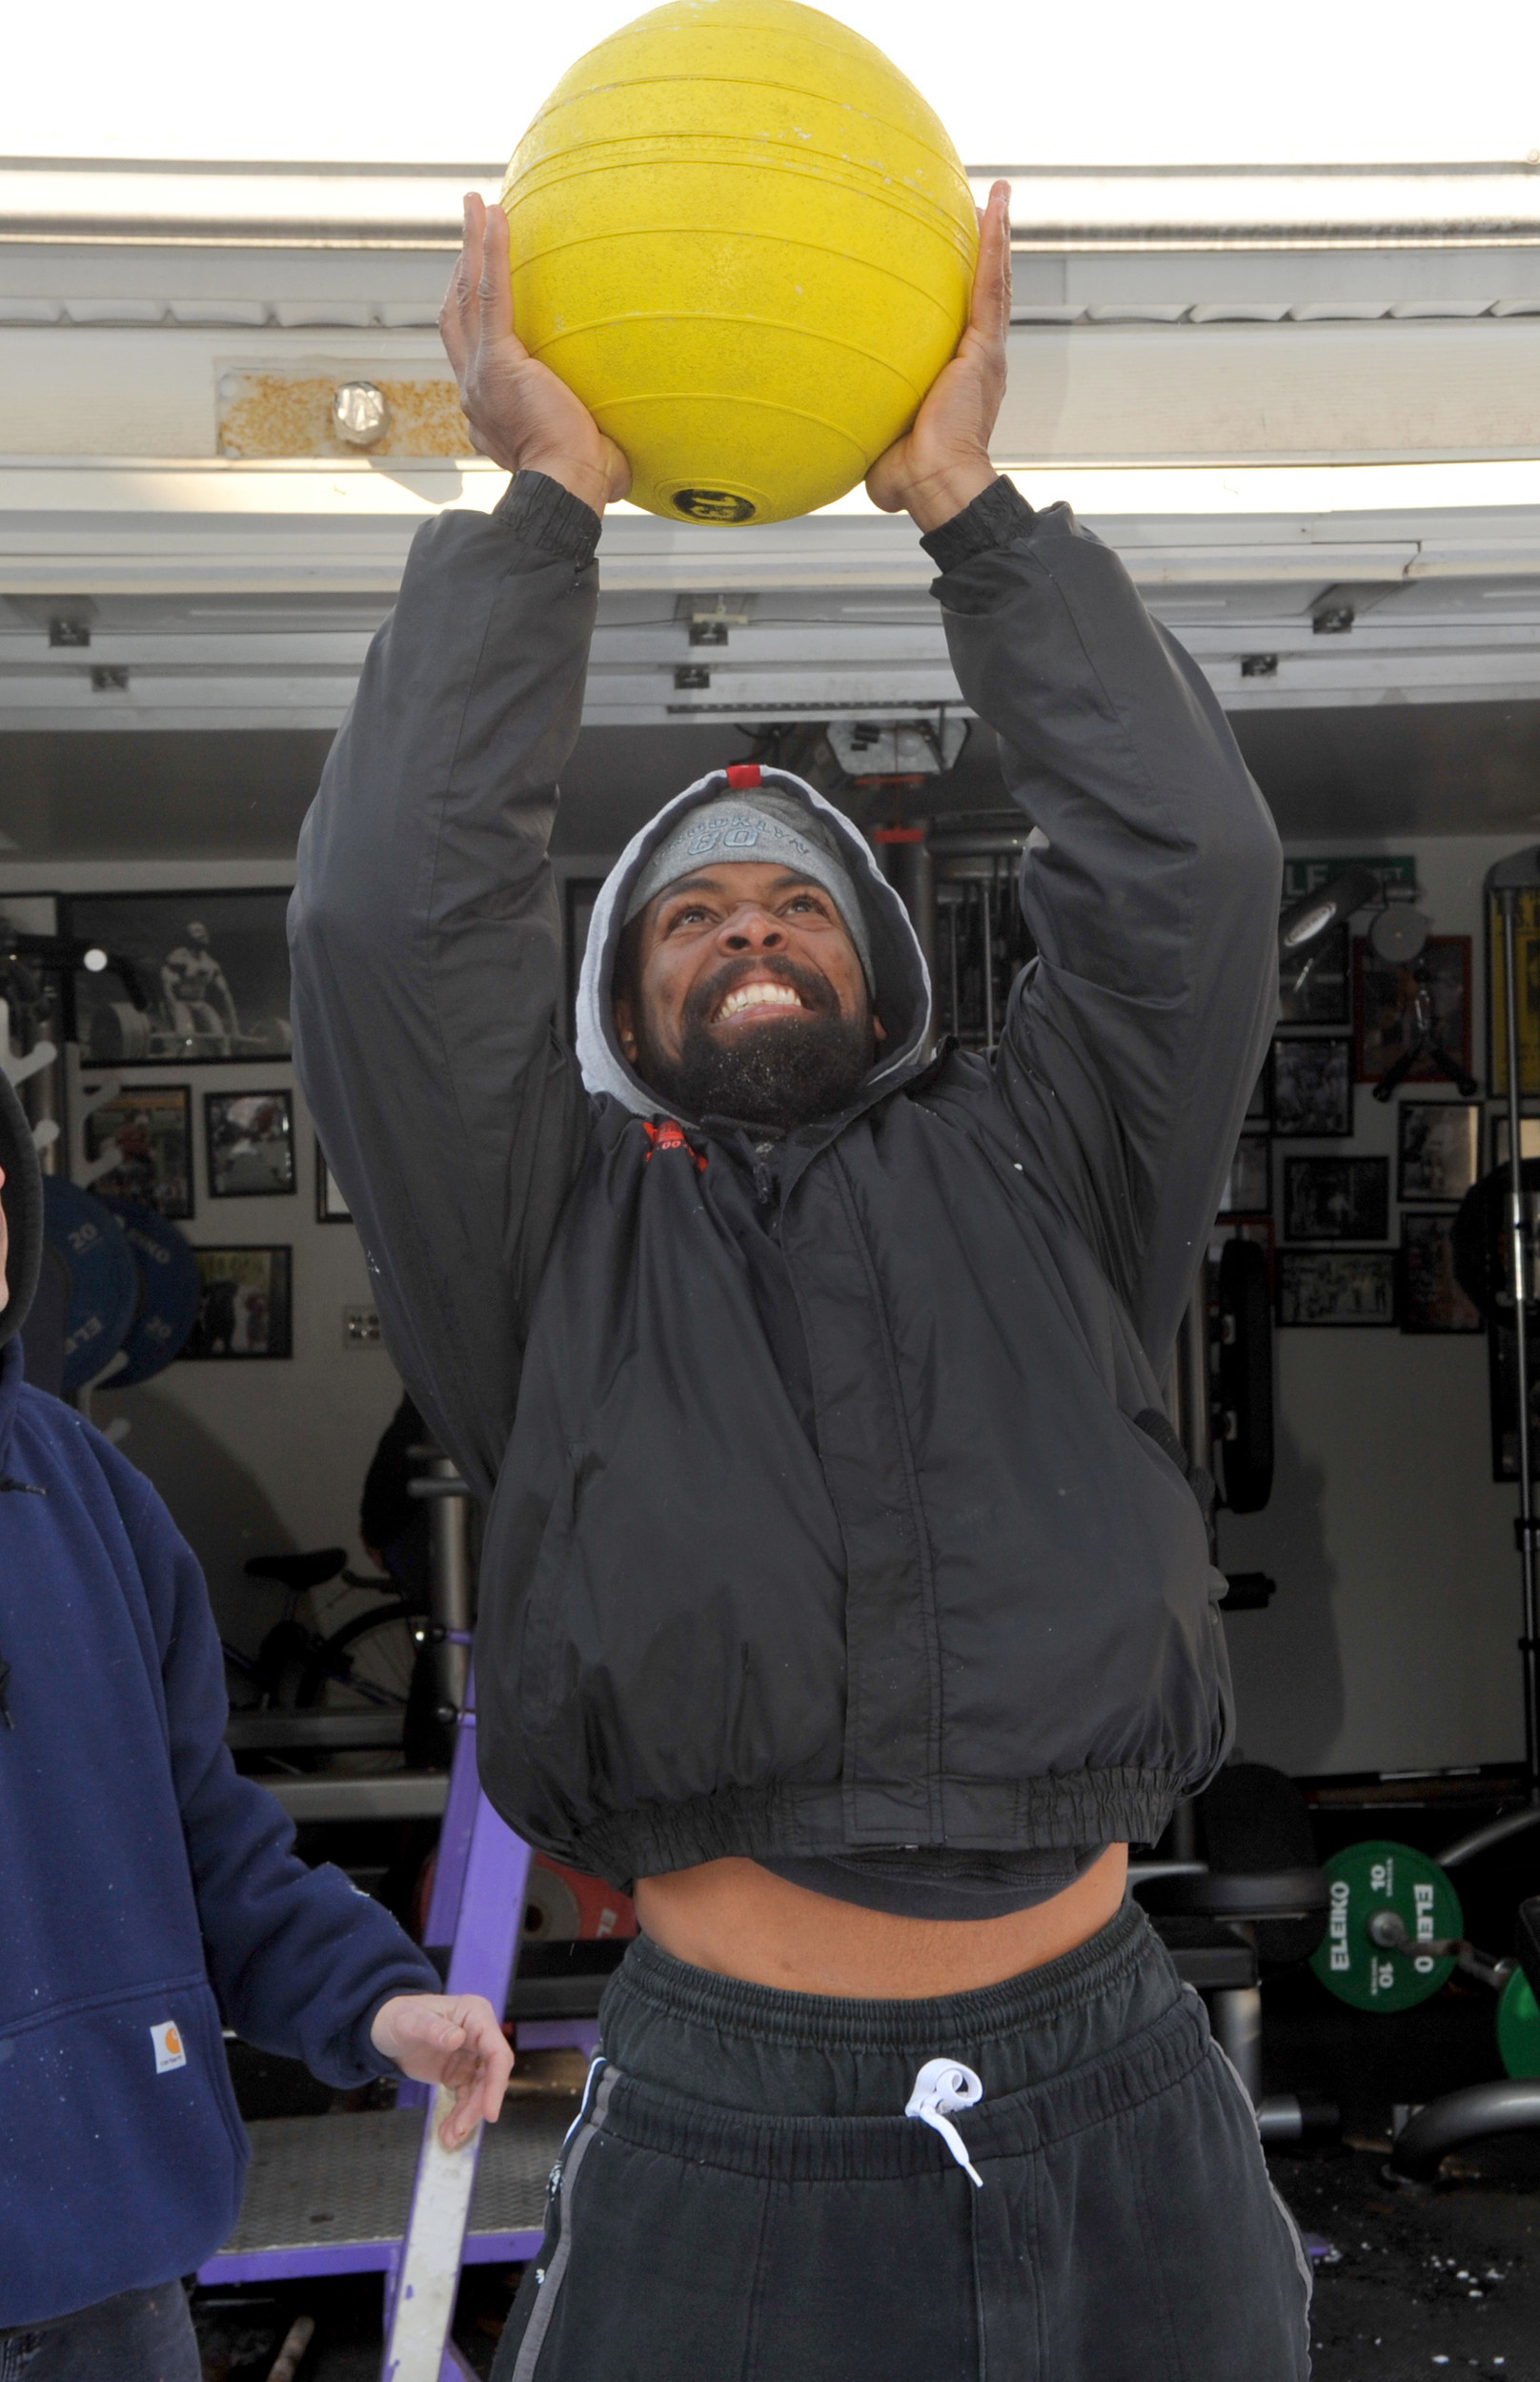 Outside the gym in Kathy and Ken Leistner's garage, Jermaine Ewell lifted a 130-pound medicine ball.